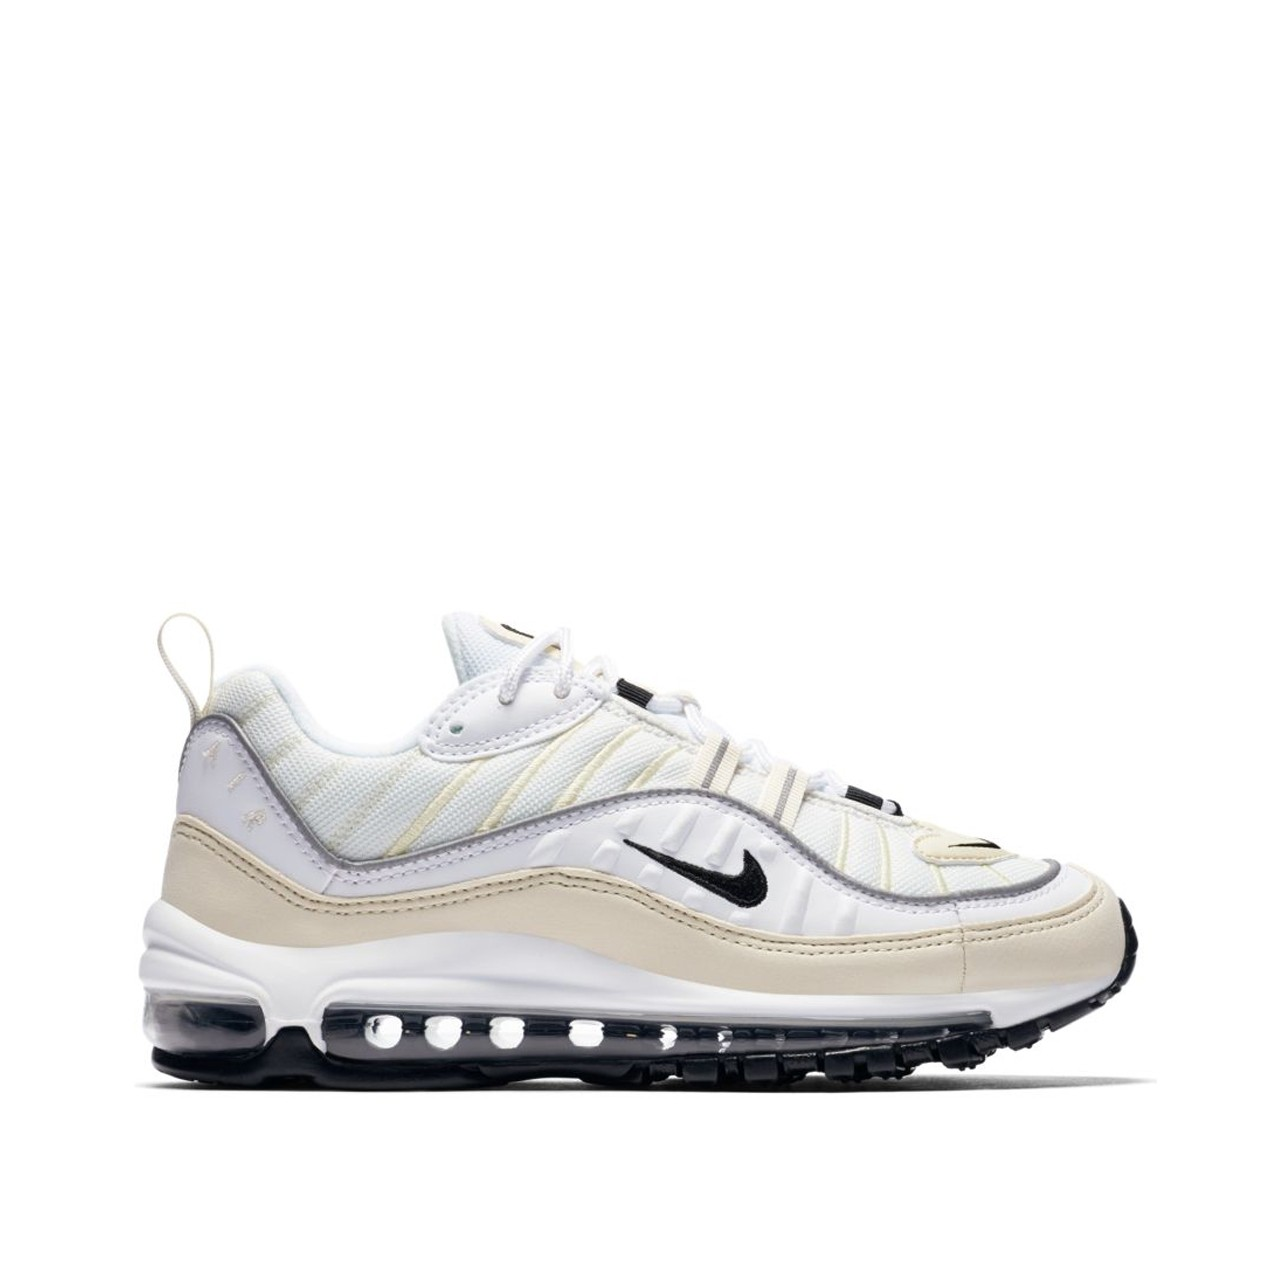 nike-wmns-air-max-98-fossil-white-black-ah6799-102-1